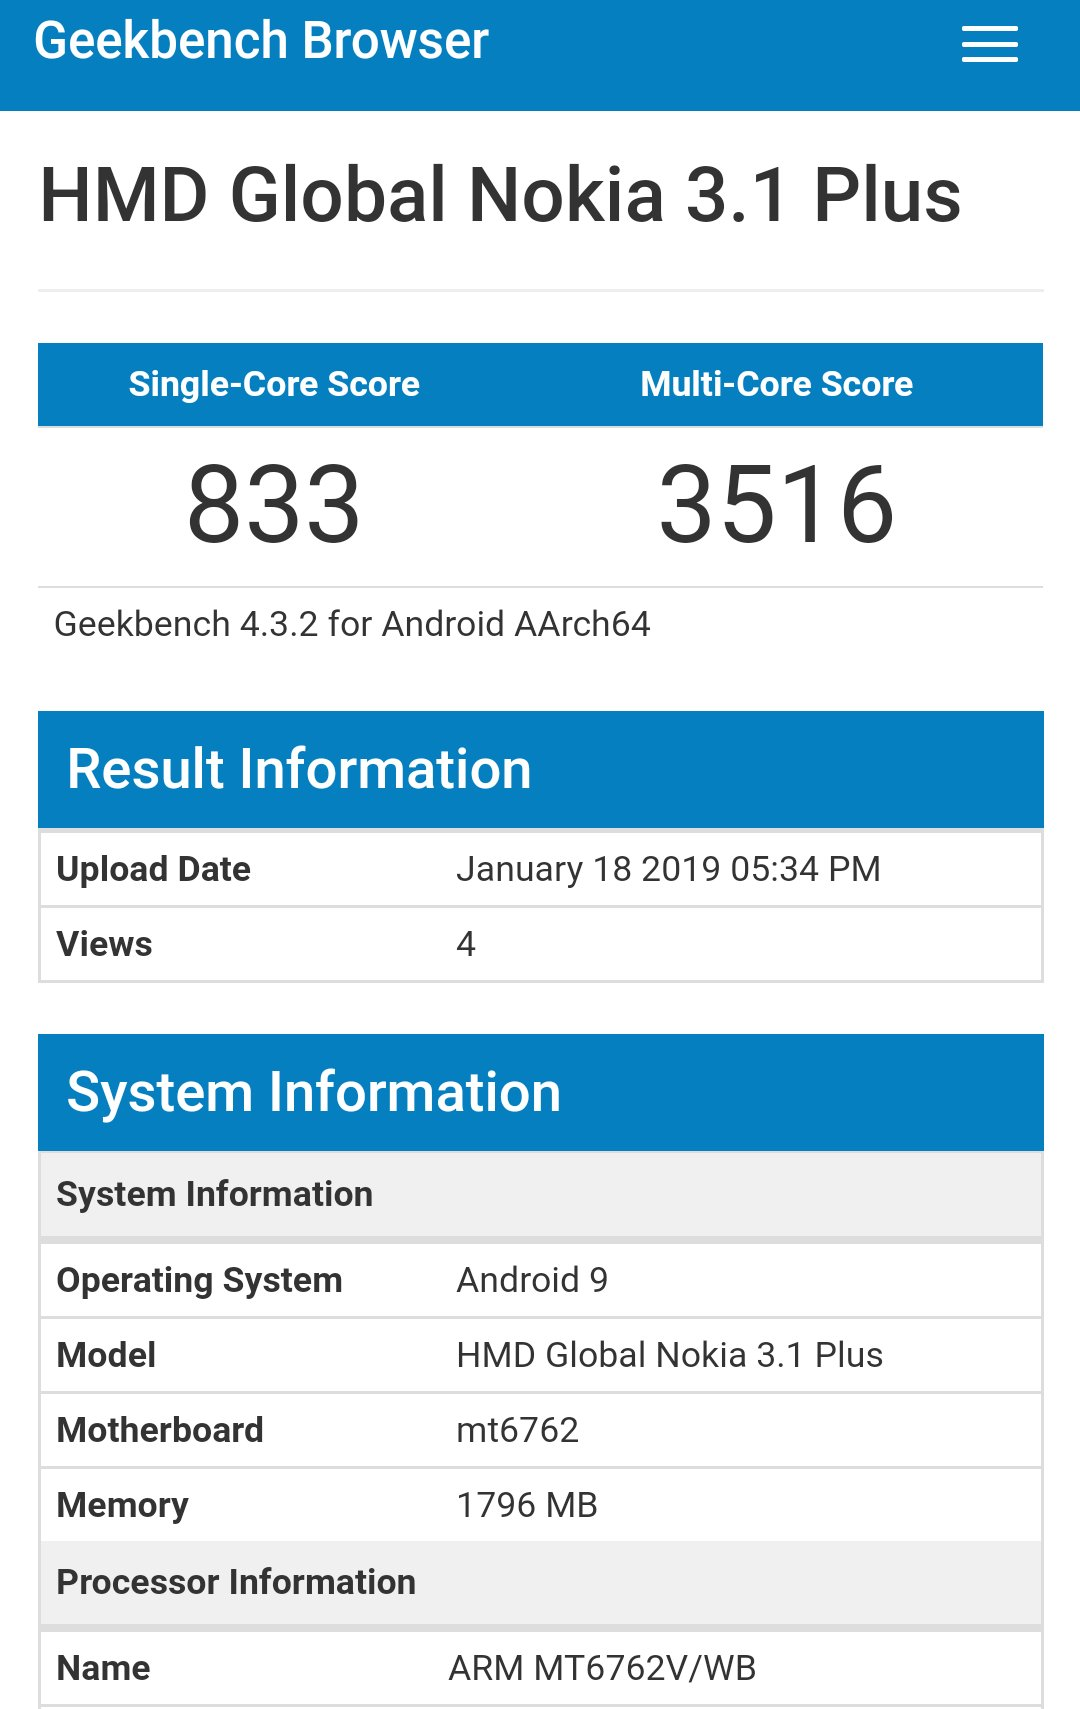 Nokia 3.1 Plus Running Android Pie on Geekbench